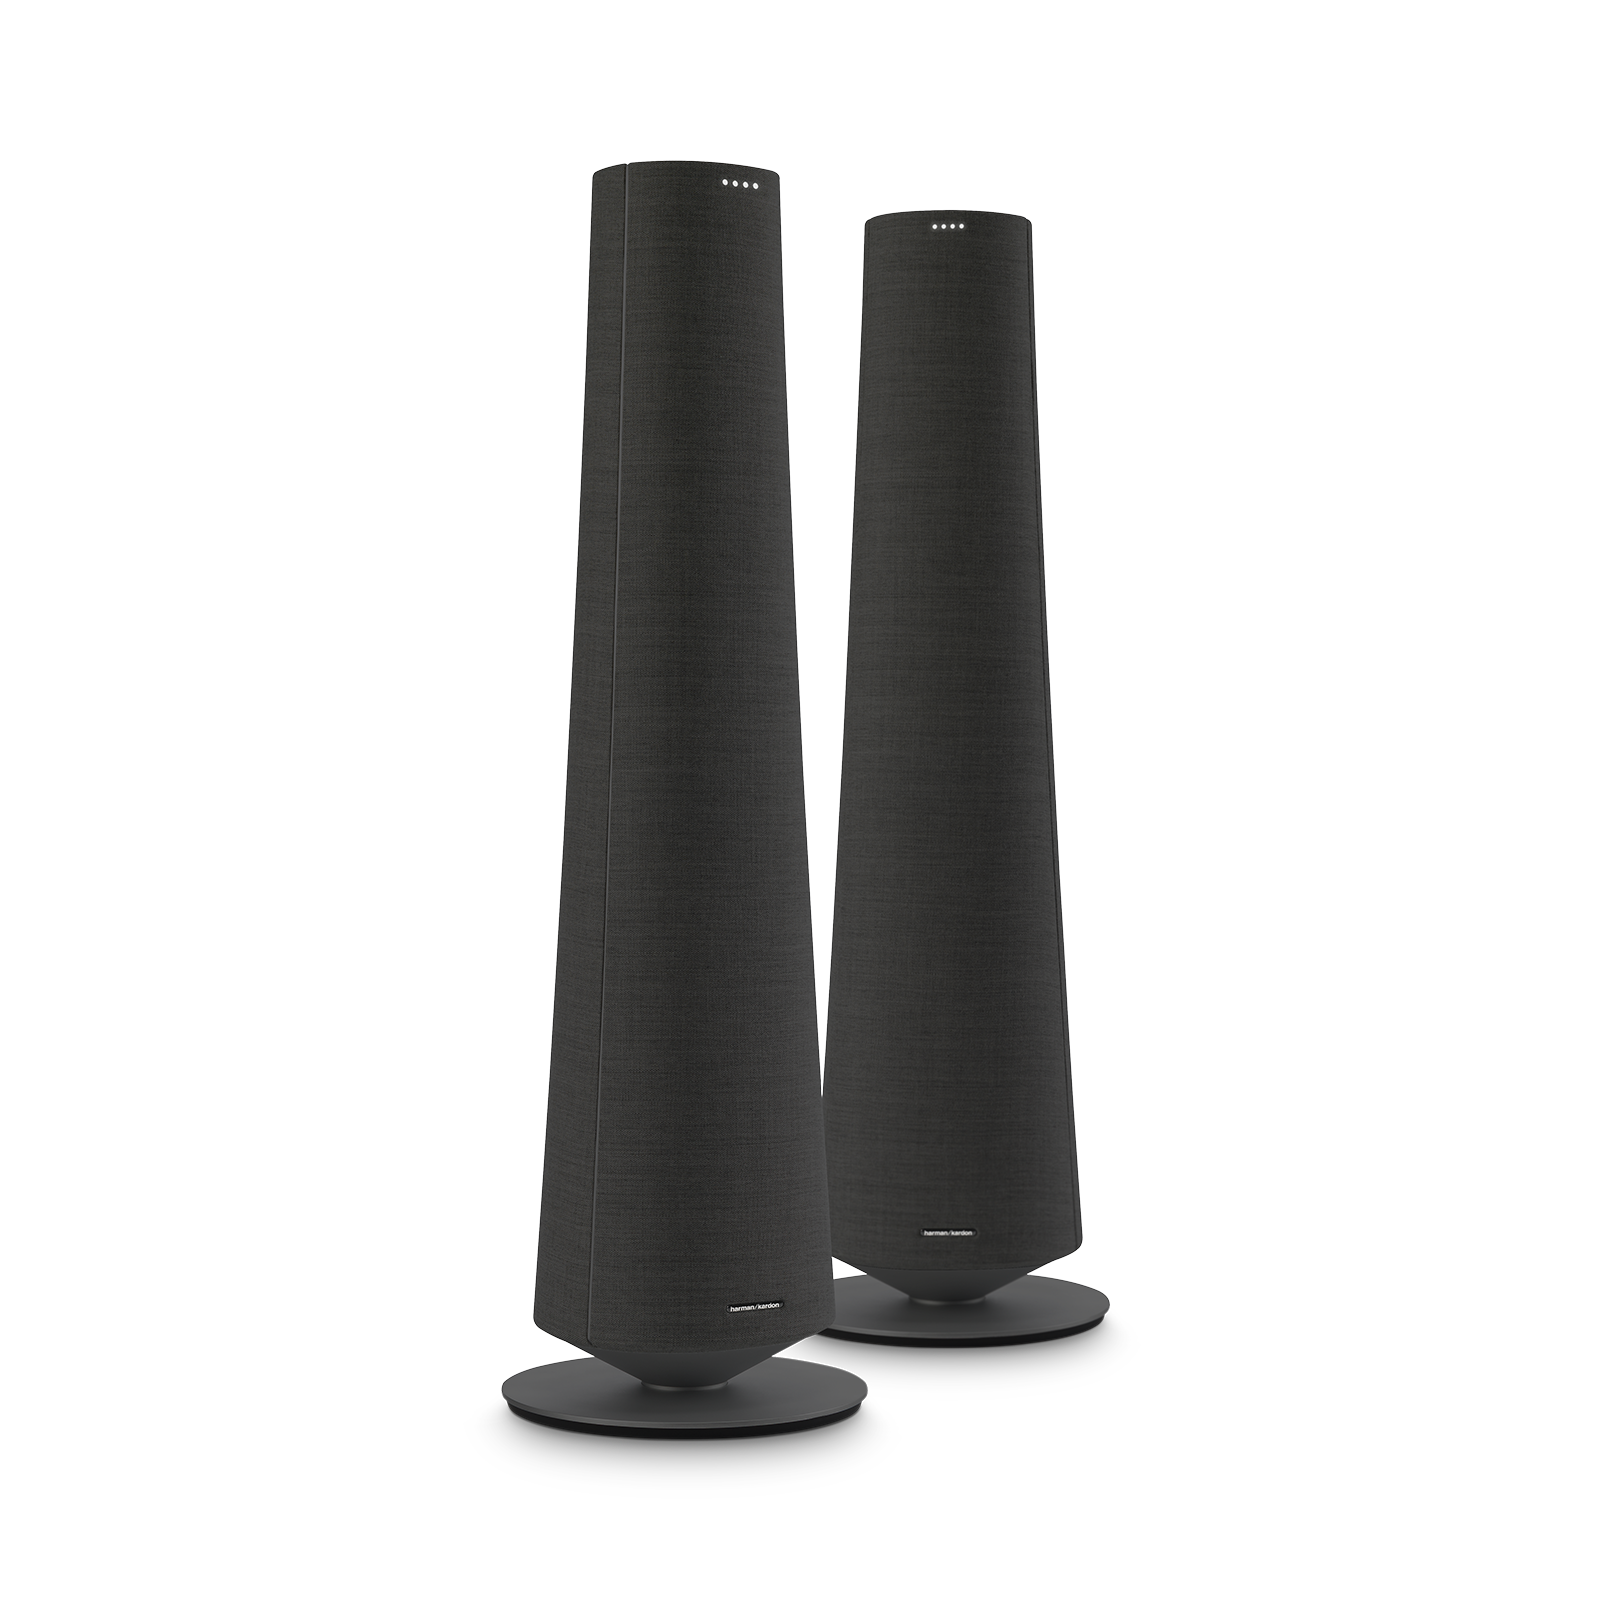 Harman Kardon Citation Tower - Black - Smart Premium Floorstanding Speaker that delivers an impactful performance - Hero